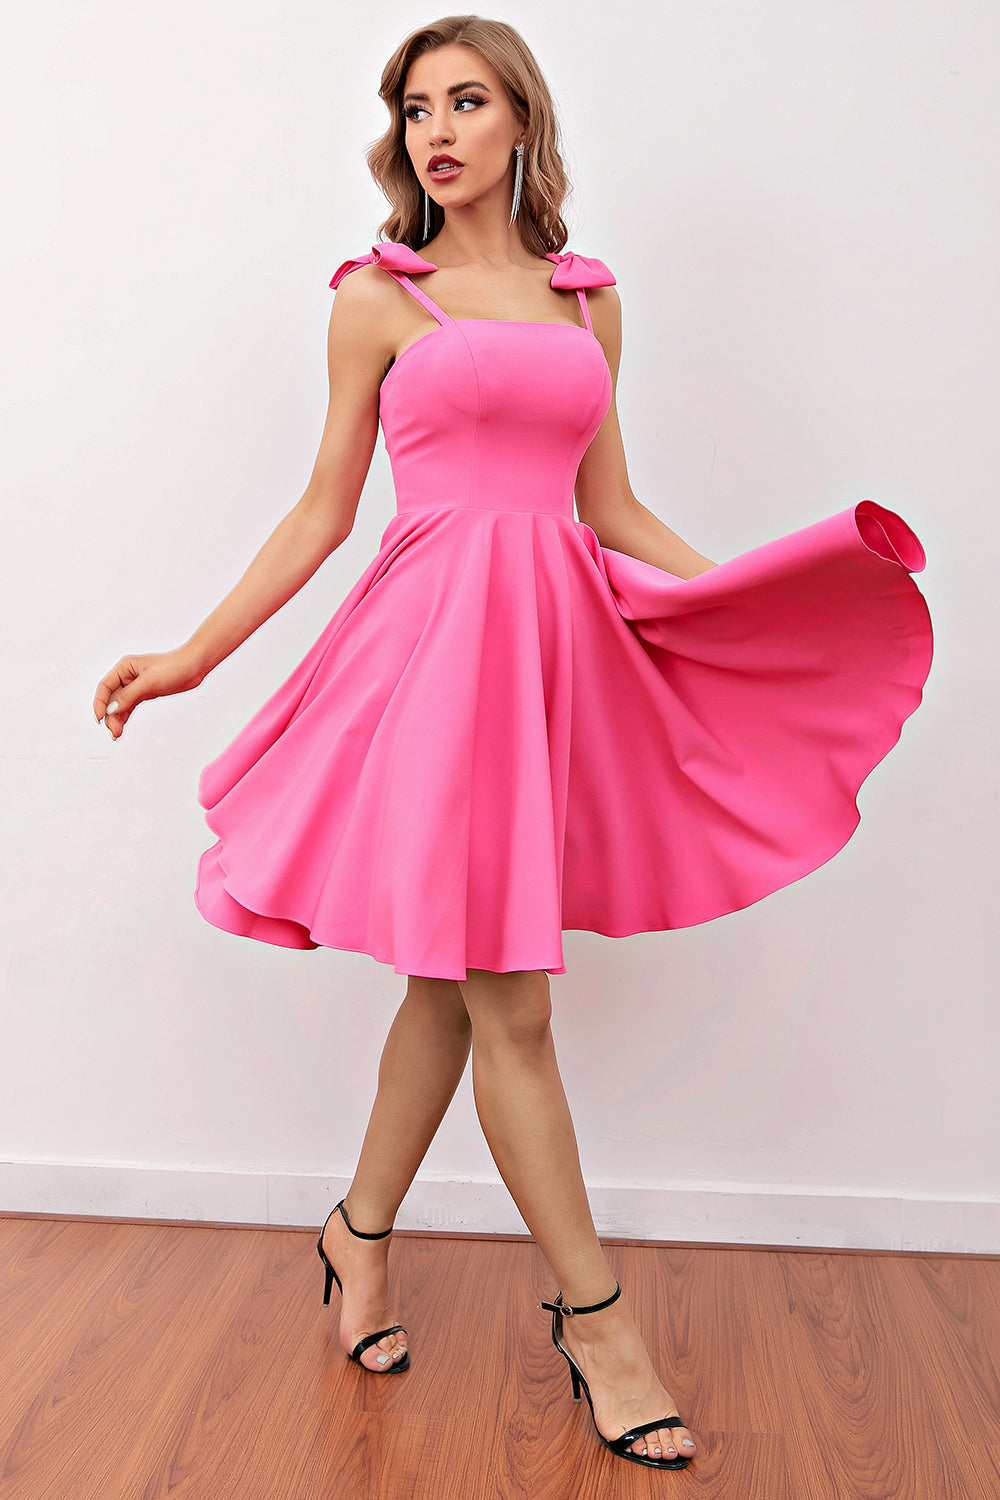 Pink Short Cocktail Dress with Bow